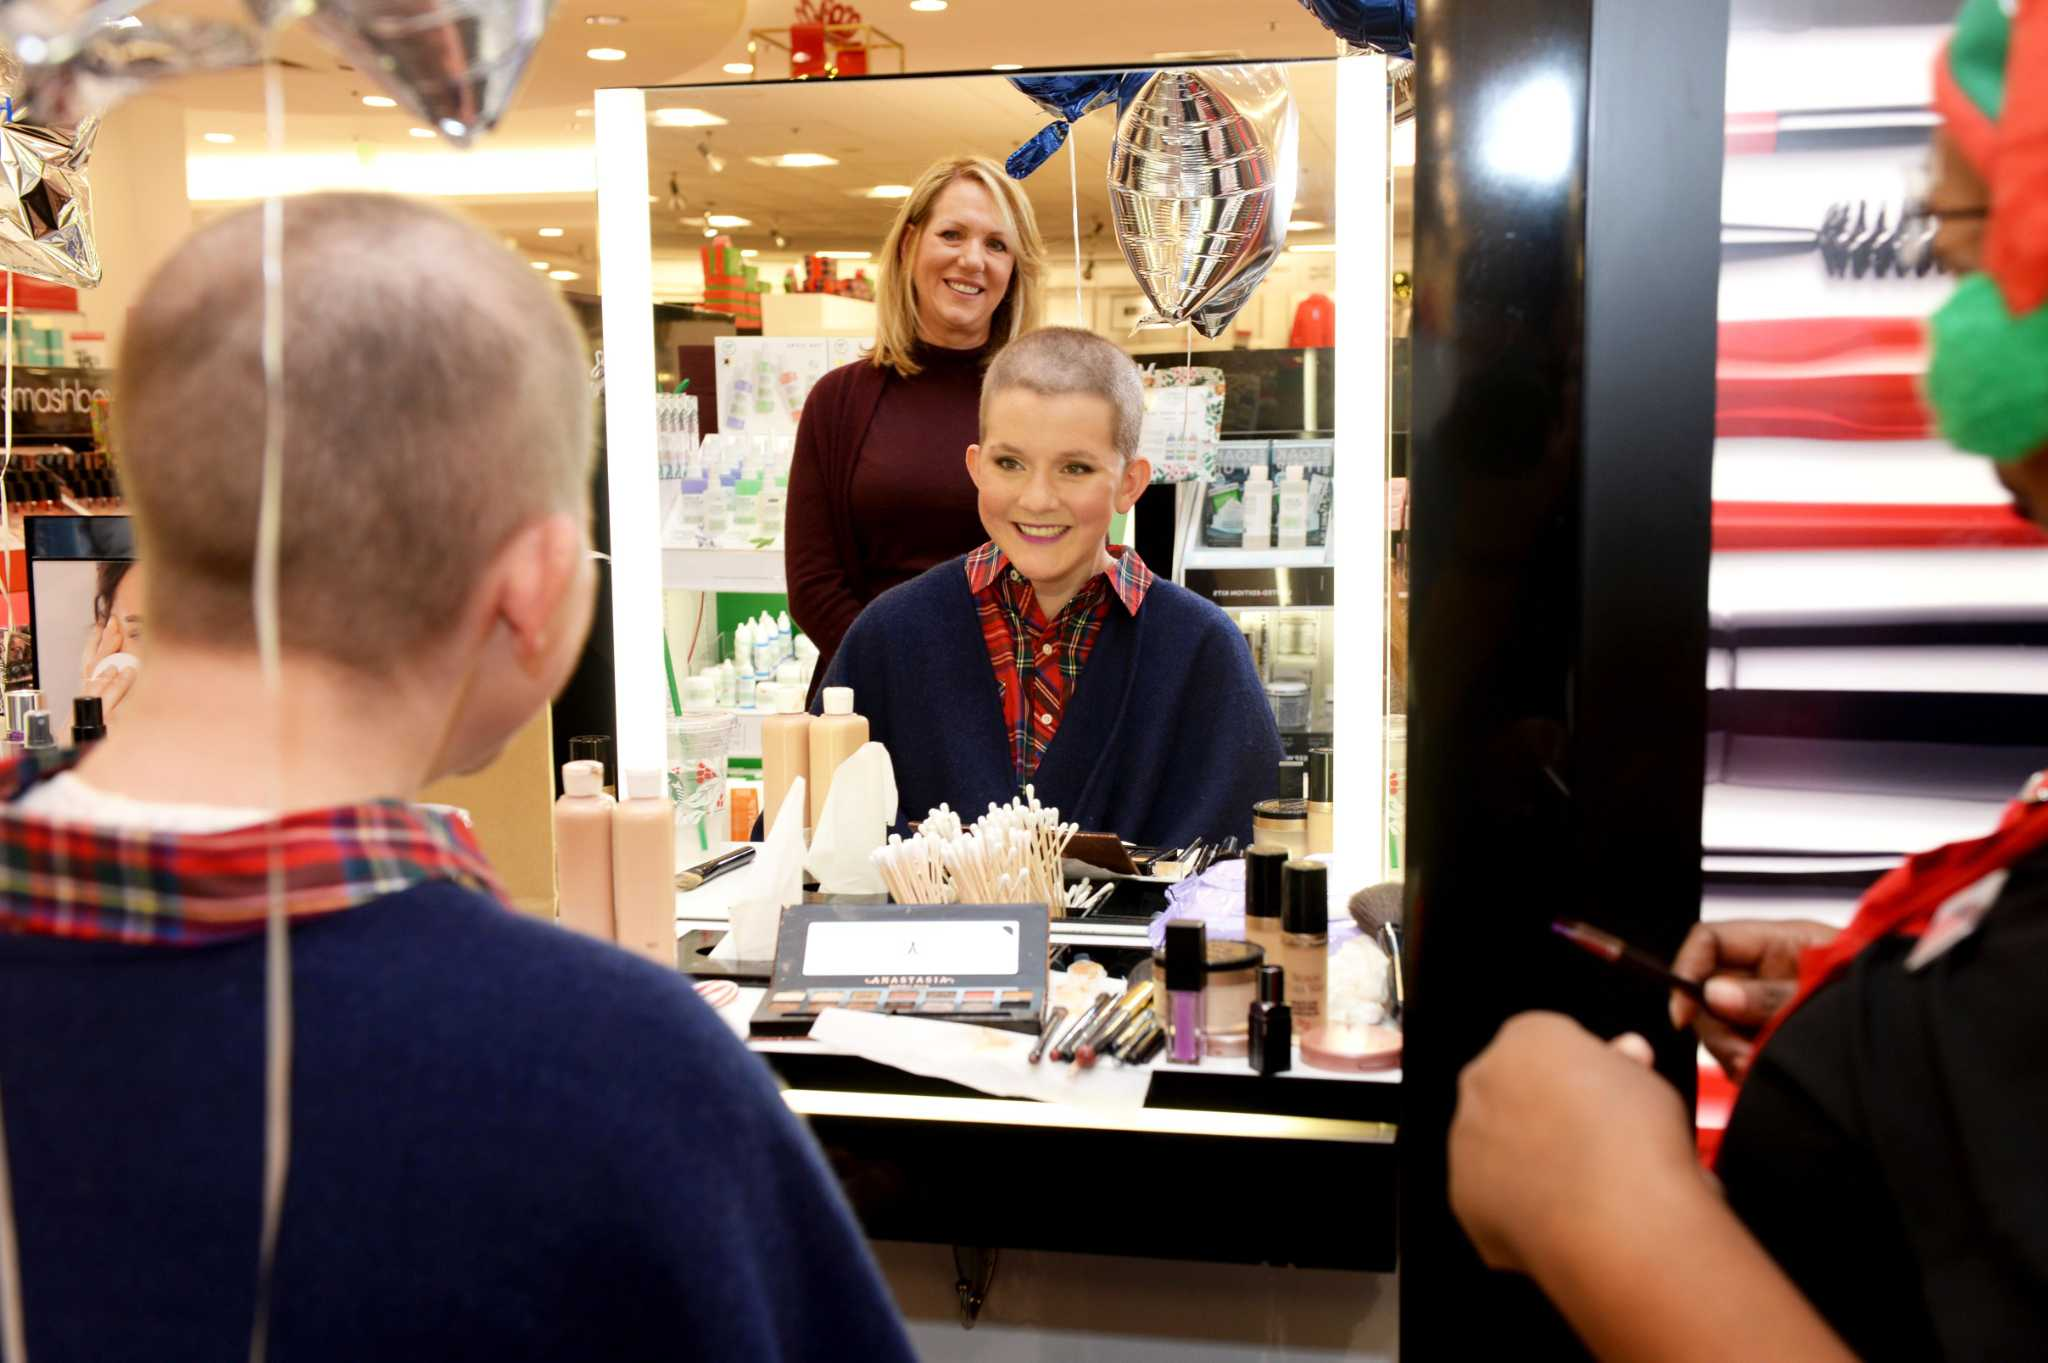 Teen's operatic wish comes true thanks to Macy's, Make-A-Wish